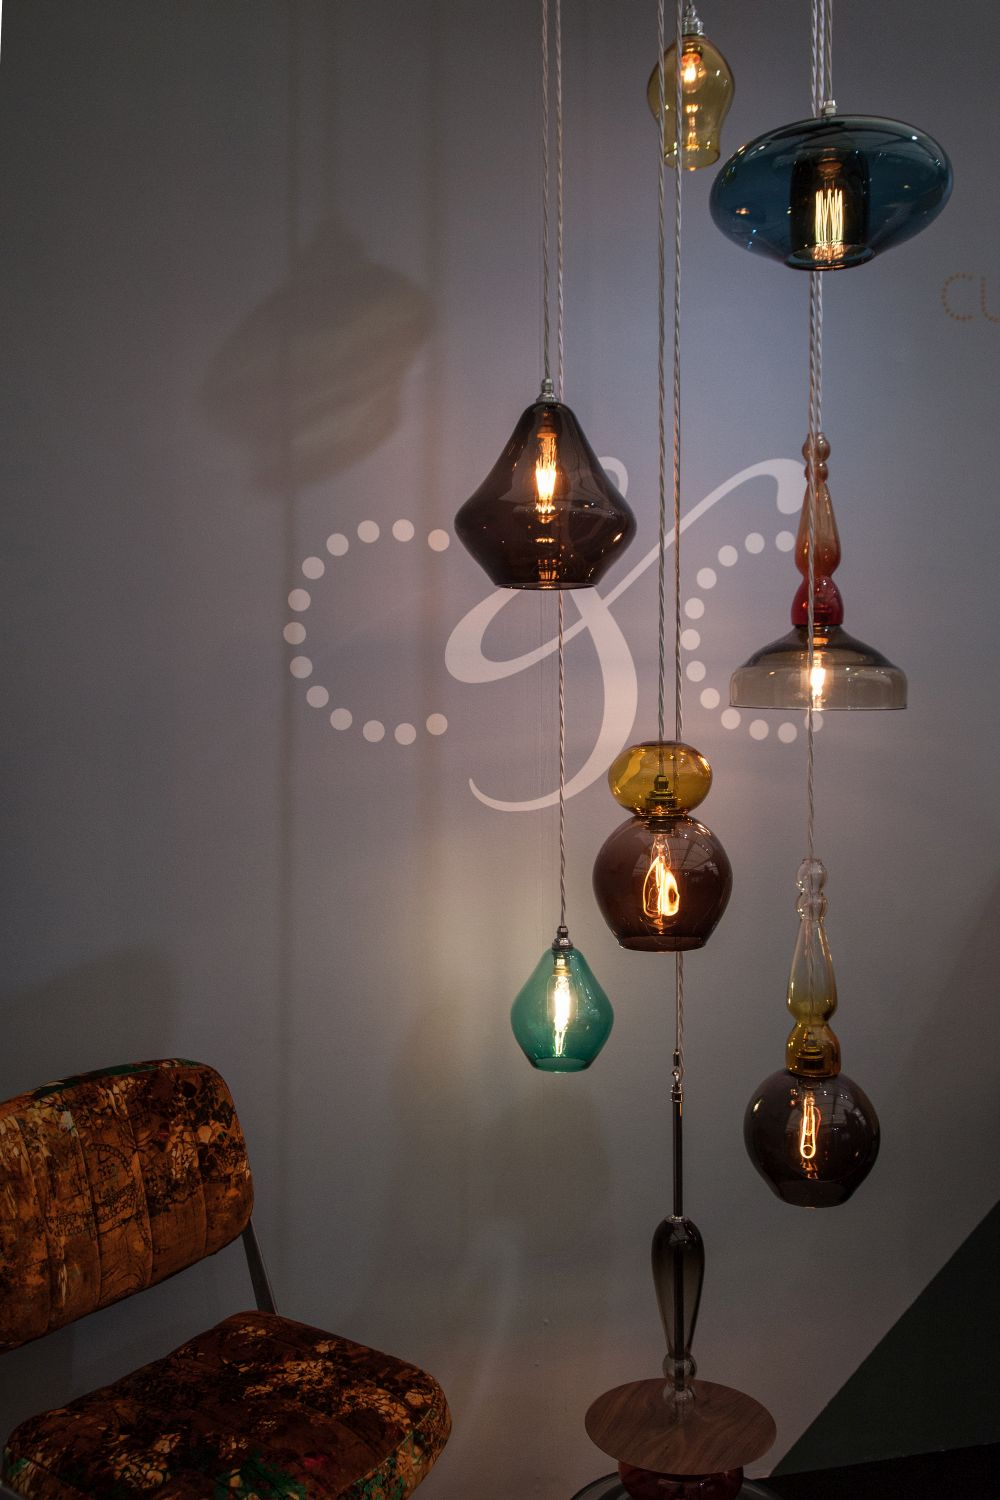 Curiosa hand-blown glass lighting